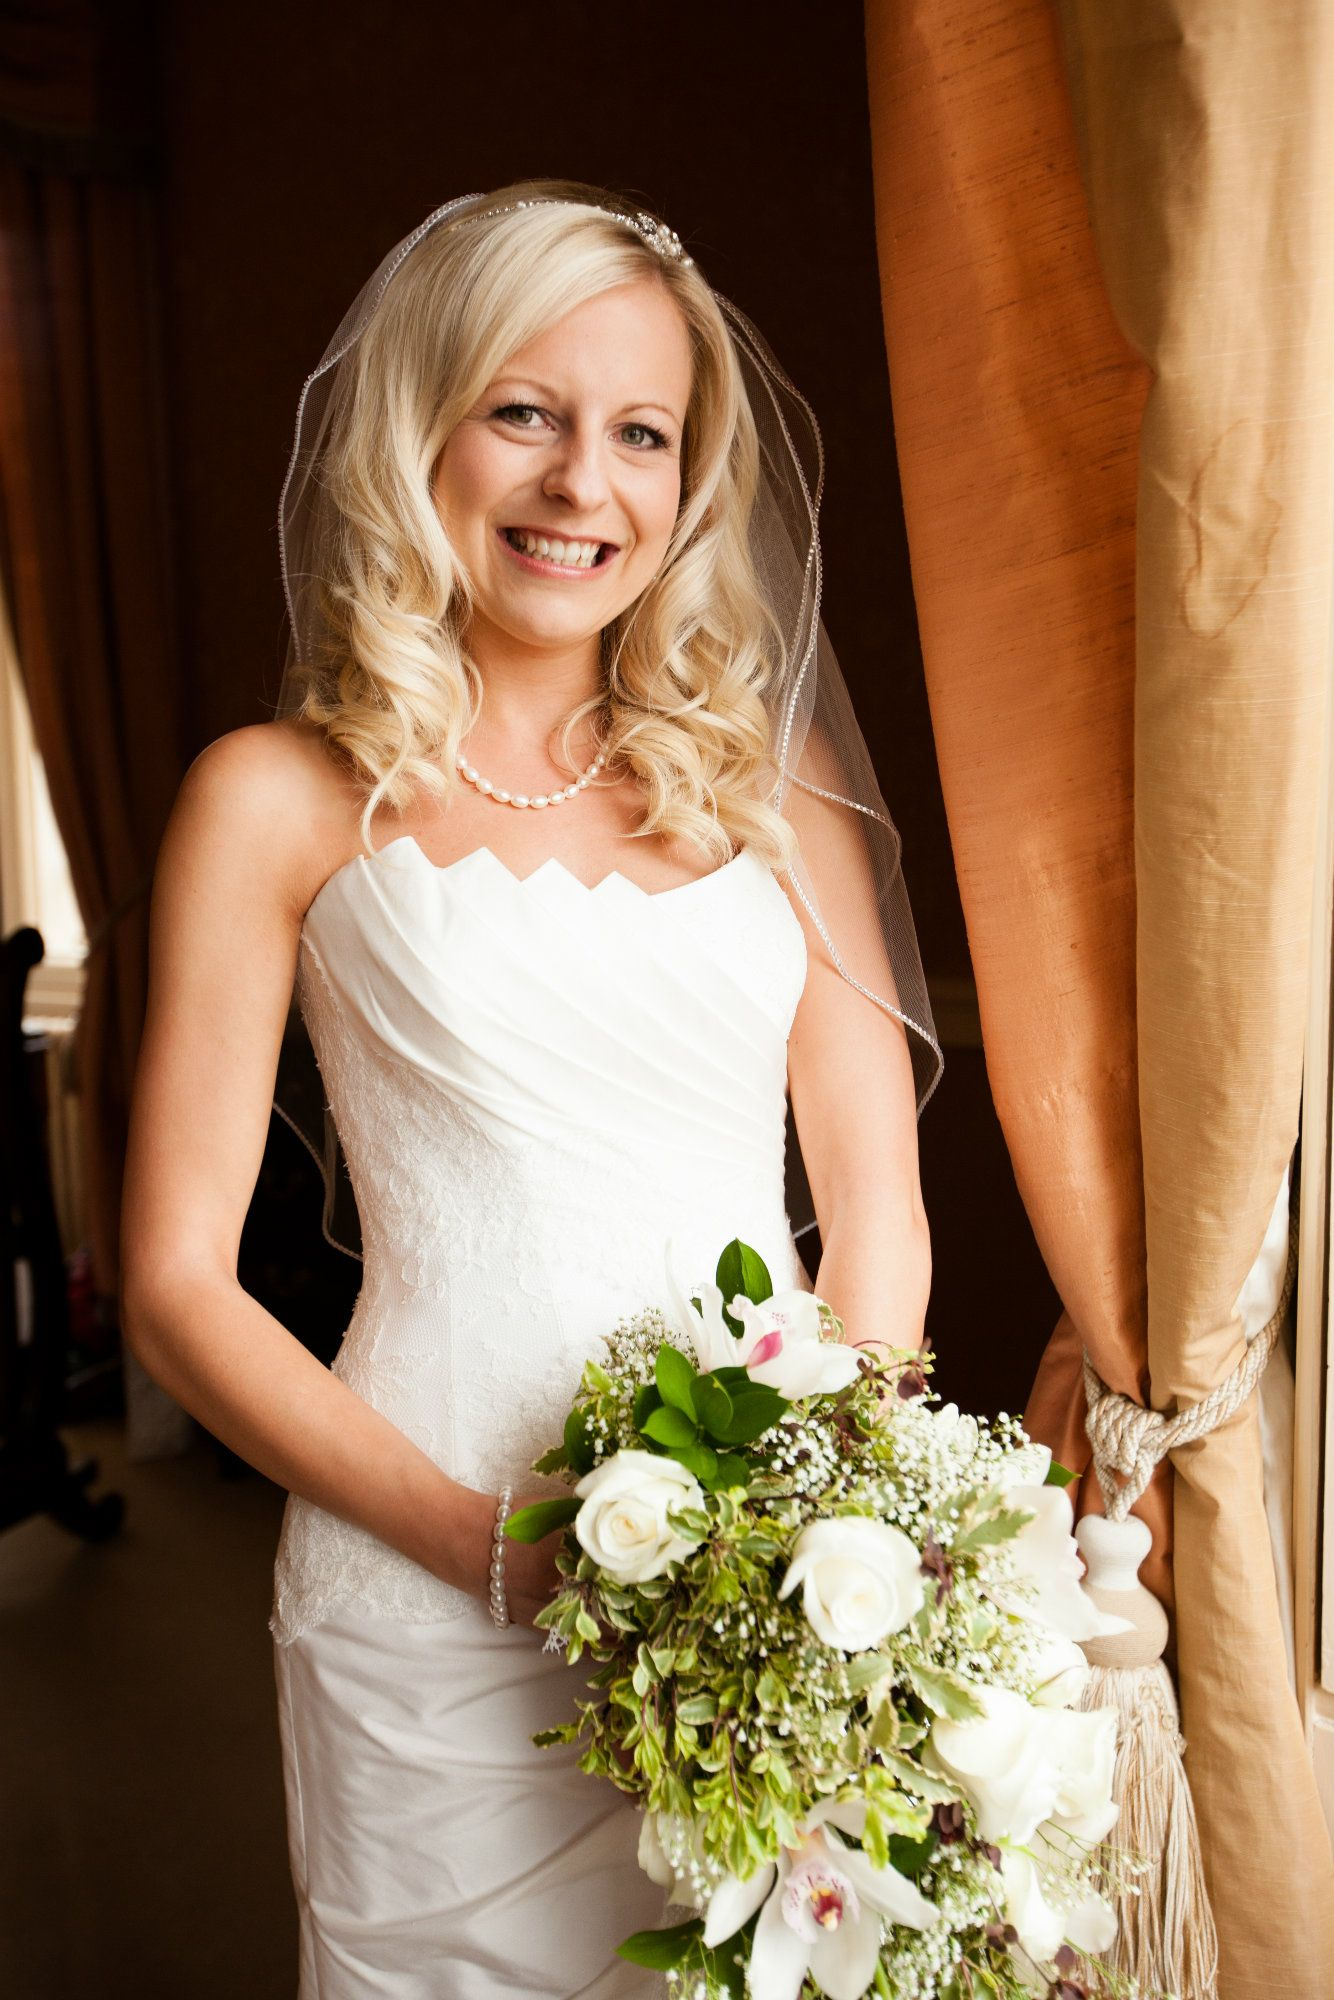 Gloucestershire-wedding-venue-hair-stylist-JNRKWD-1 (2)